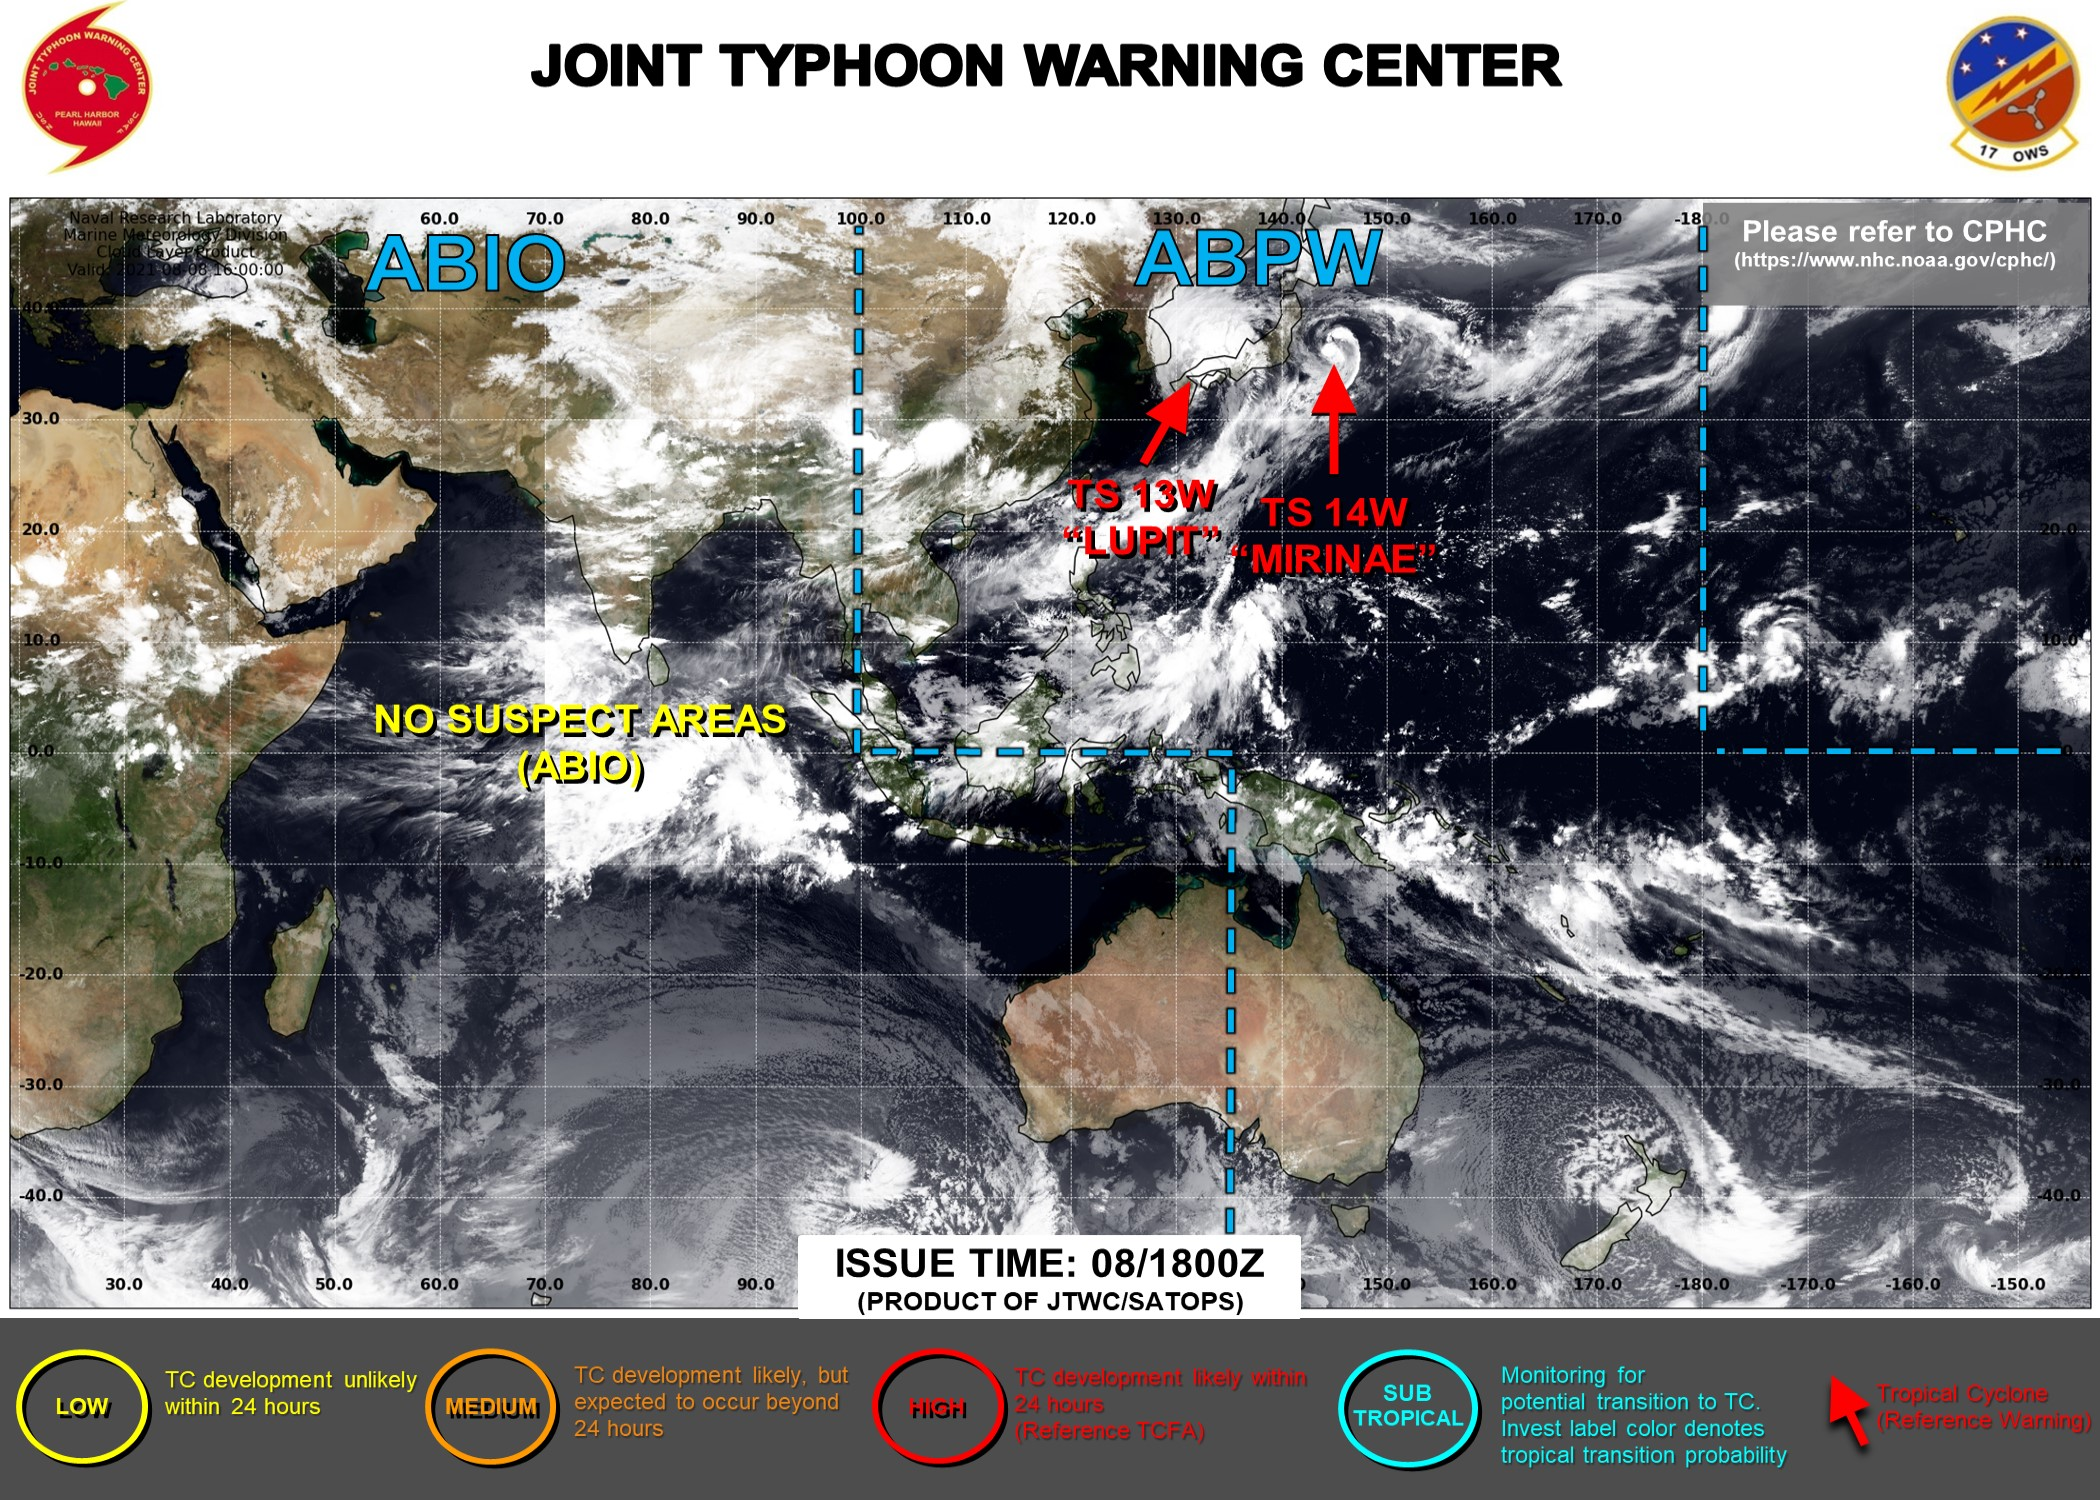 JTWC ARE ISSUING 6HOURLY WARNINGS AND 3HOURLY SATELLITE BULLETINS ON 13W AND 14W.